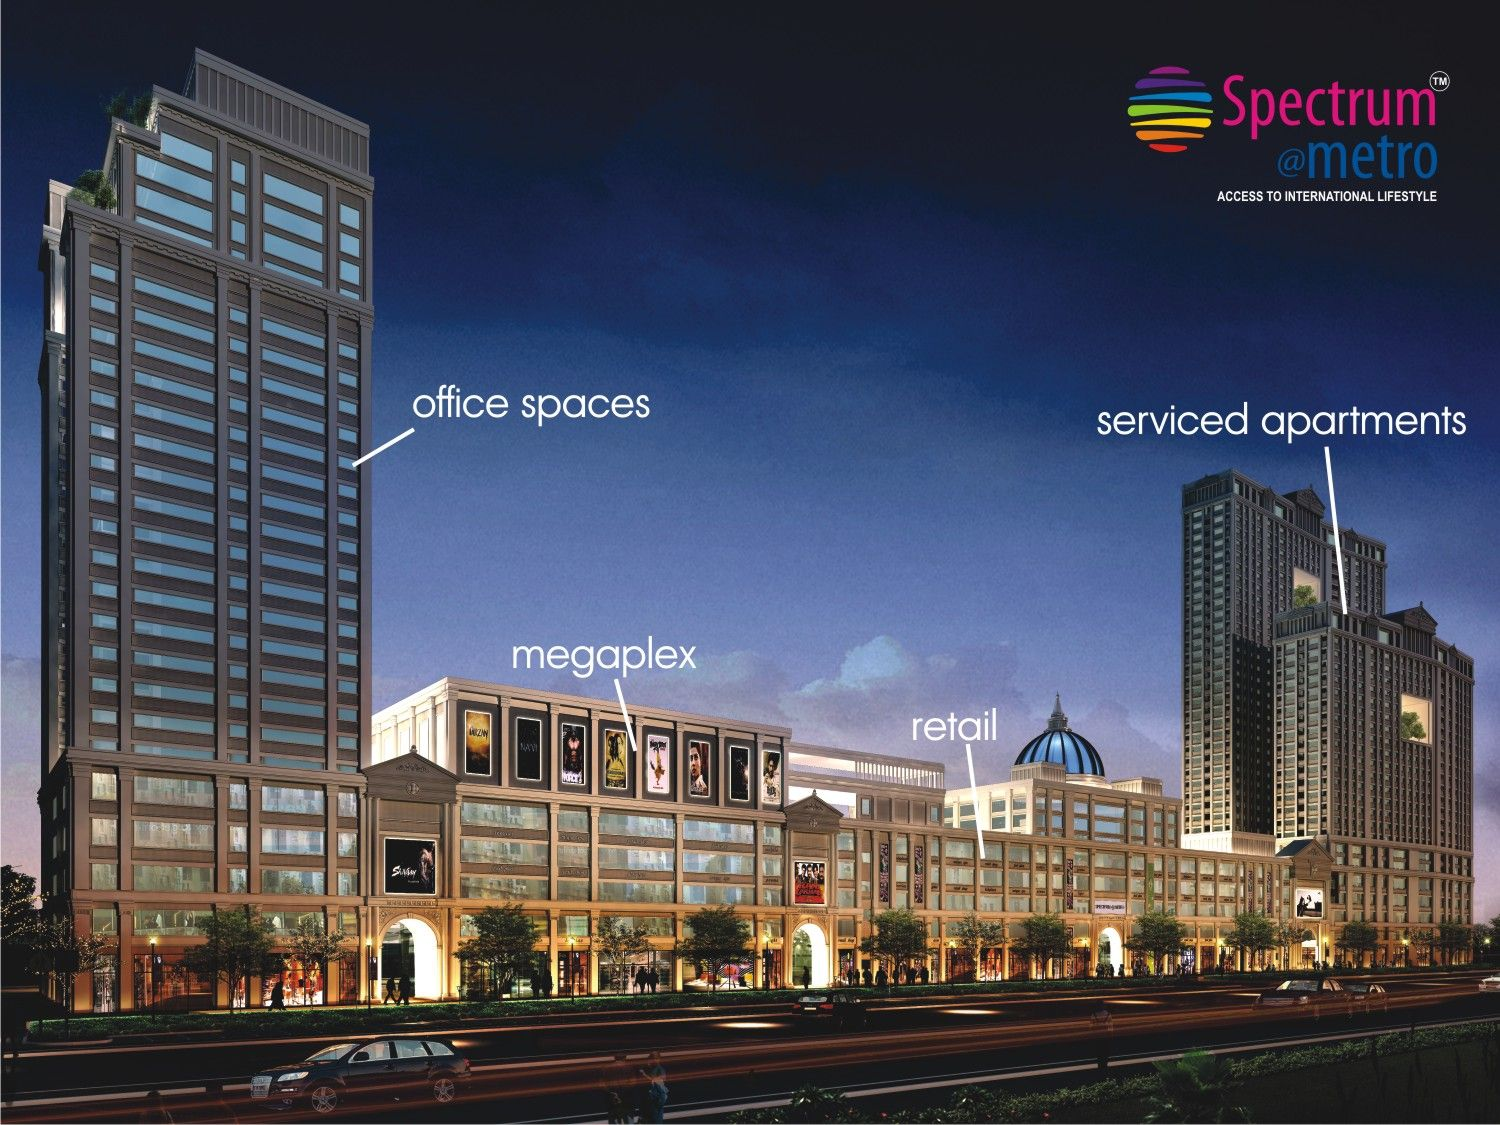 Pin by Realty Acres on Spectrum Metro Retail shop, Cost